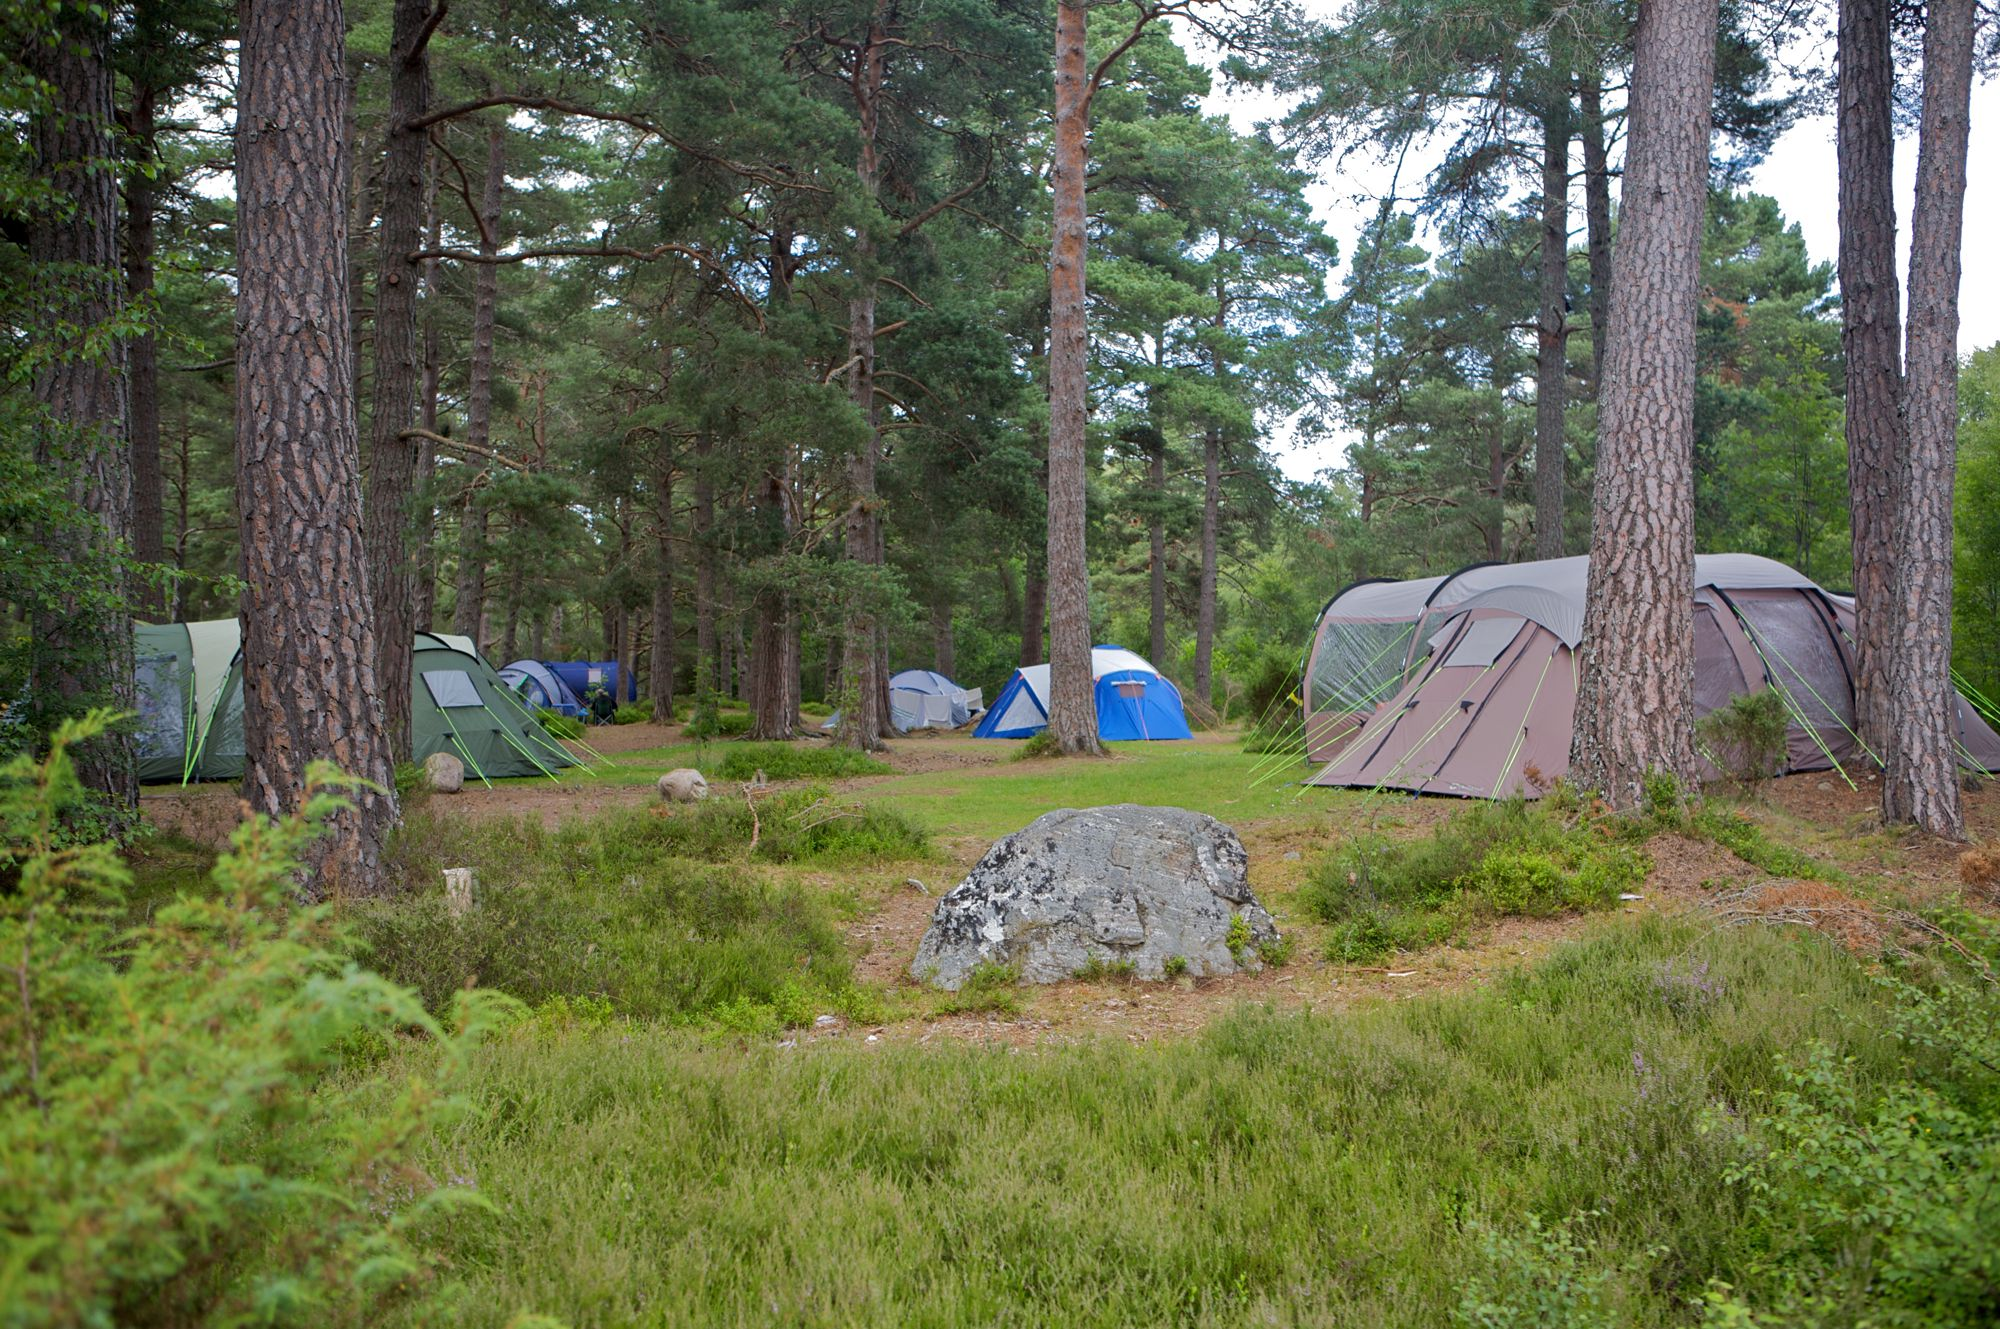 Woodland Campsites – Camping in the woods & forest – Cool Camping